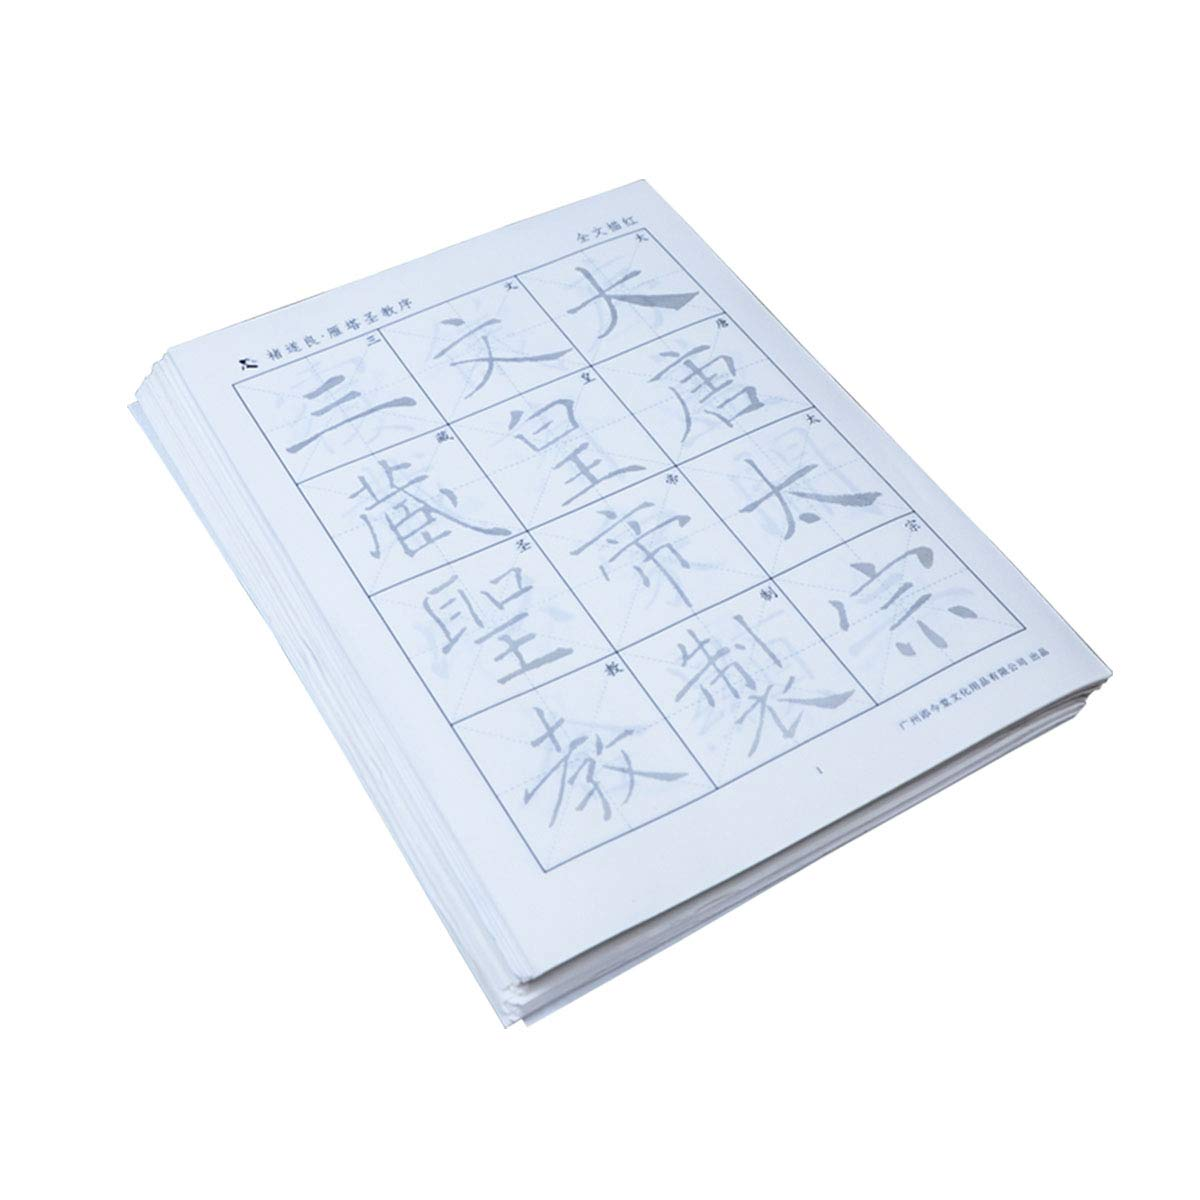 Wang Xizhi王羲之-The Orchid Pavilion兰亭集序 Tianjintang A4 Size Chinese Calligraphy Big Characters Tracing Writing Xuan Rice Paper Sheets for Beginners